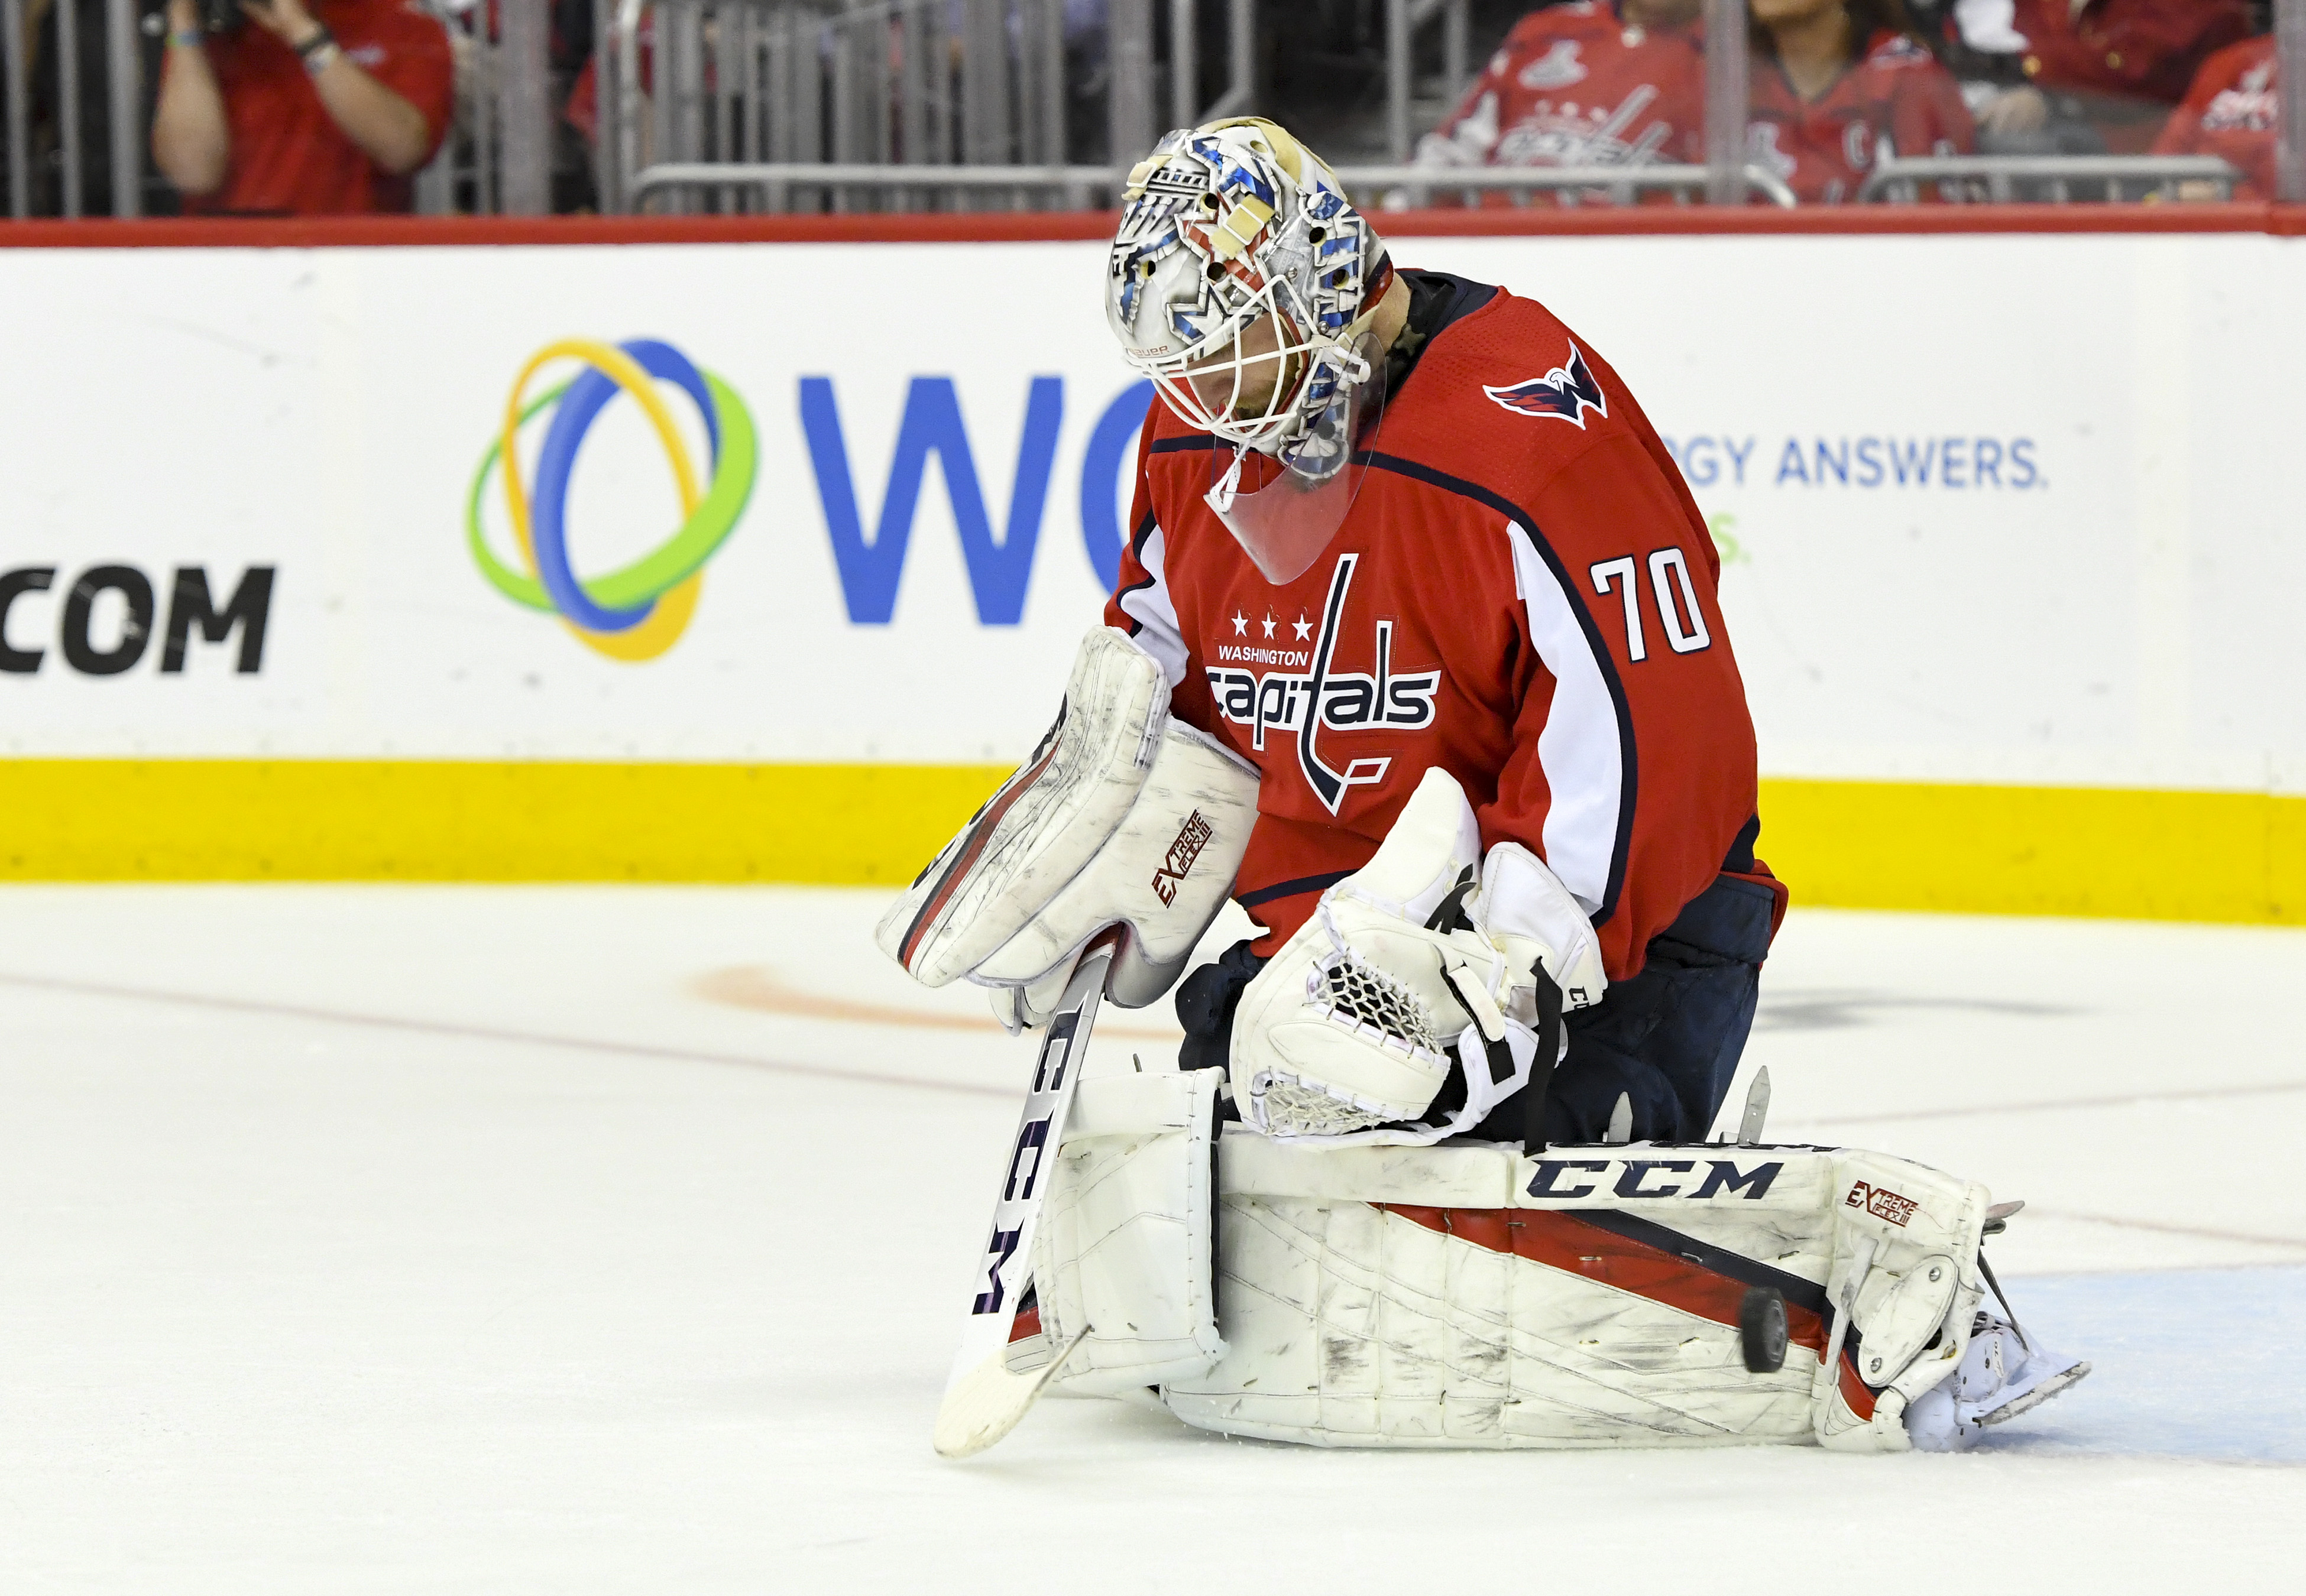 NHL: APR 20 Stanley Cup Playoffs First Round - Hurricanes at Capitals